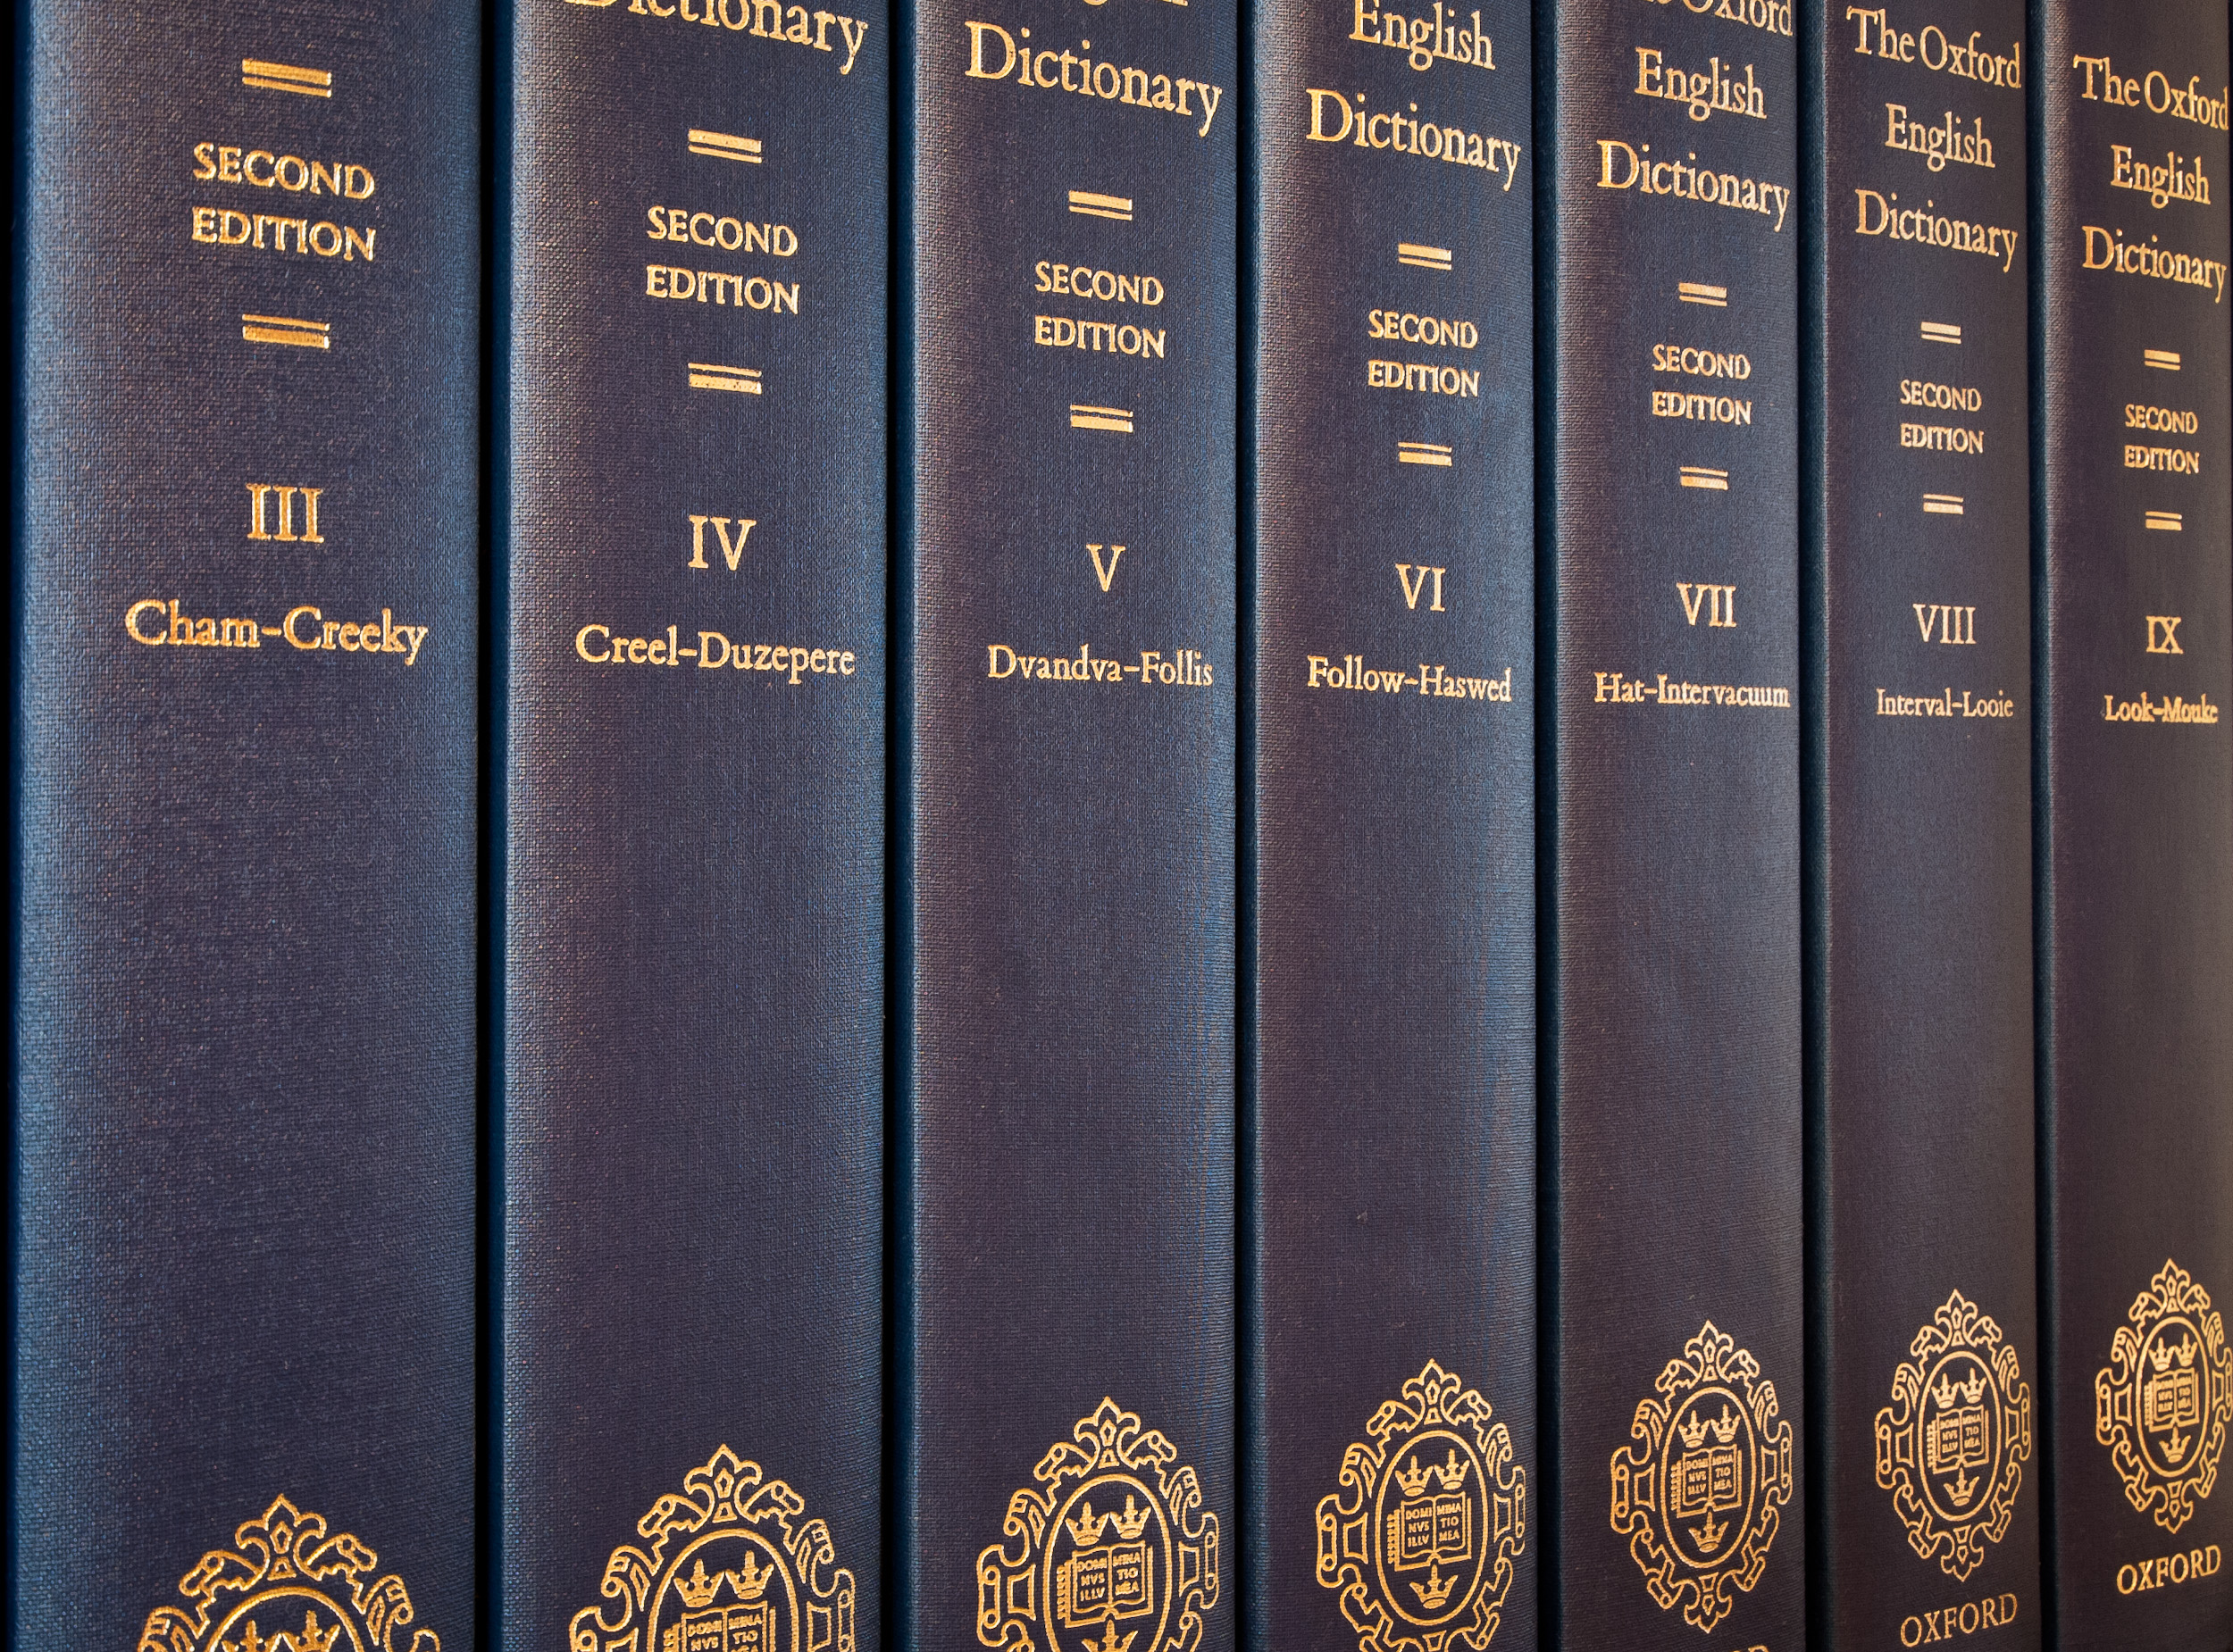 024 Oed2 Volumes Manual For Writers Of Researchs Theses And Dissertations Magnificent Research Papers 8th 13 A 9th Edition Apa Full